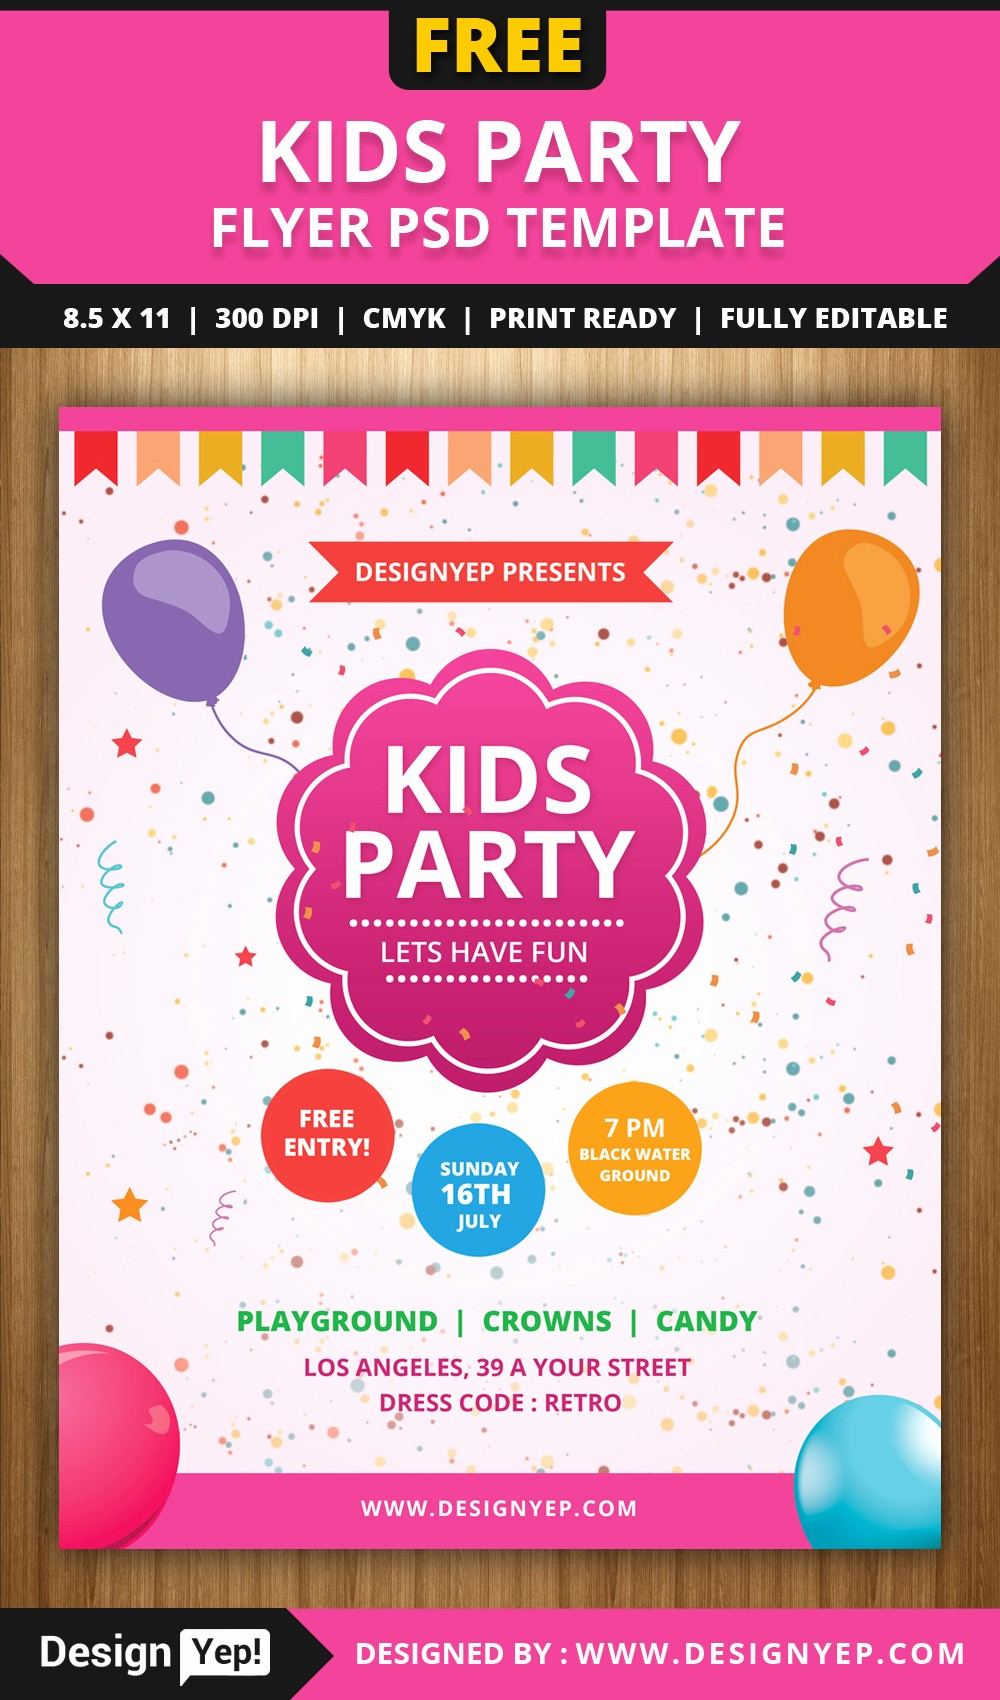 Birthday Party Flyer Template Free Fresh Free Kids Party Flyer Psd Template Designyep